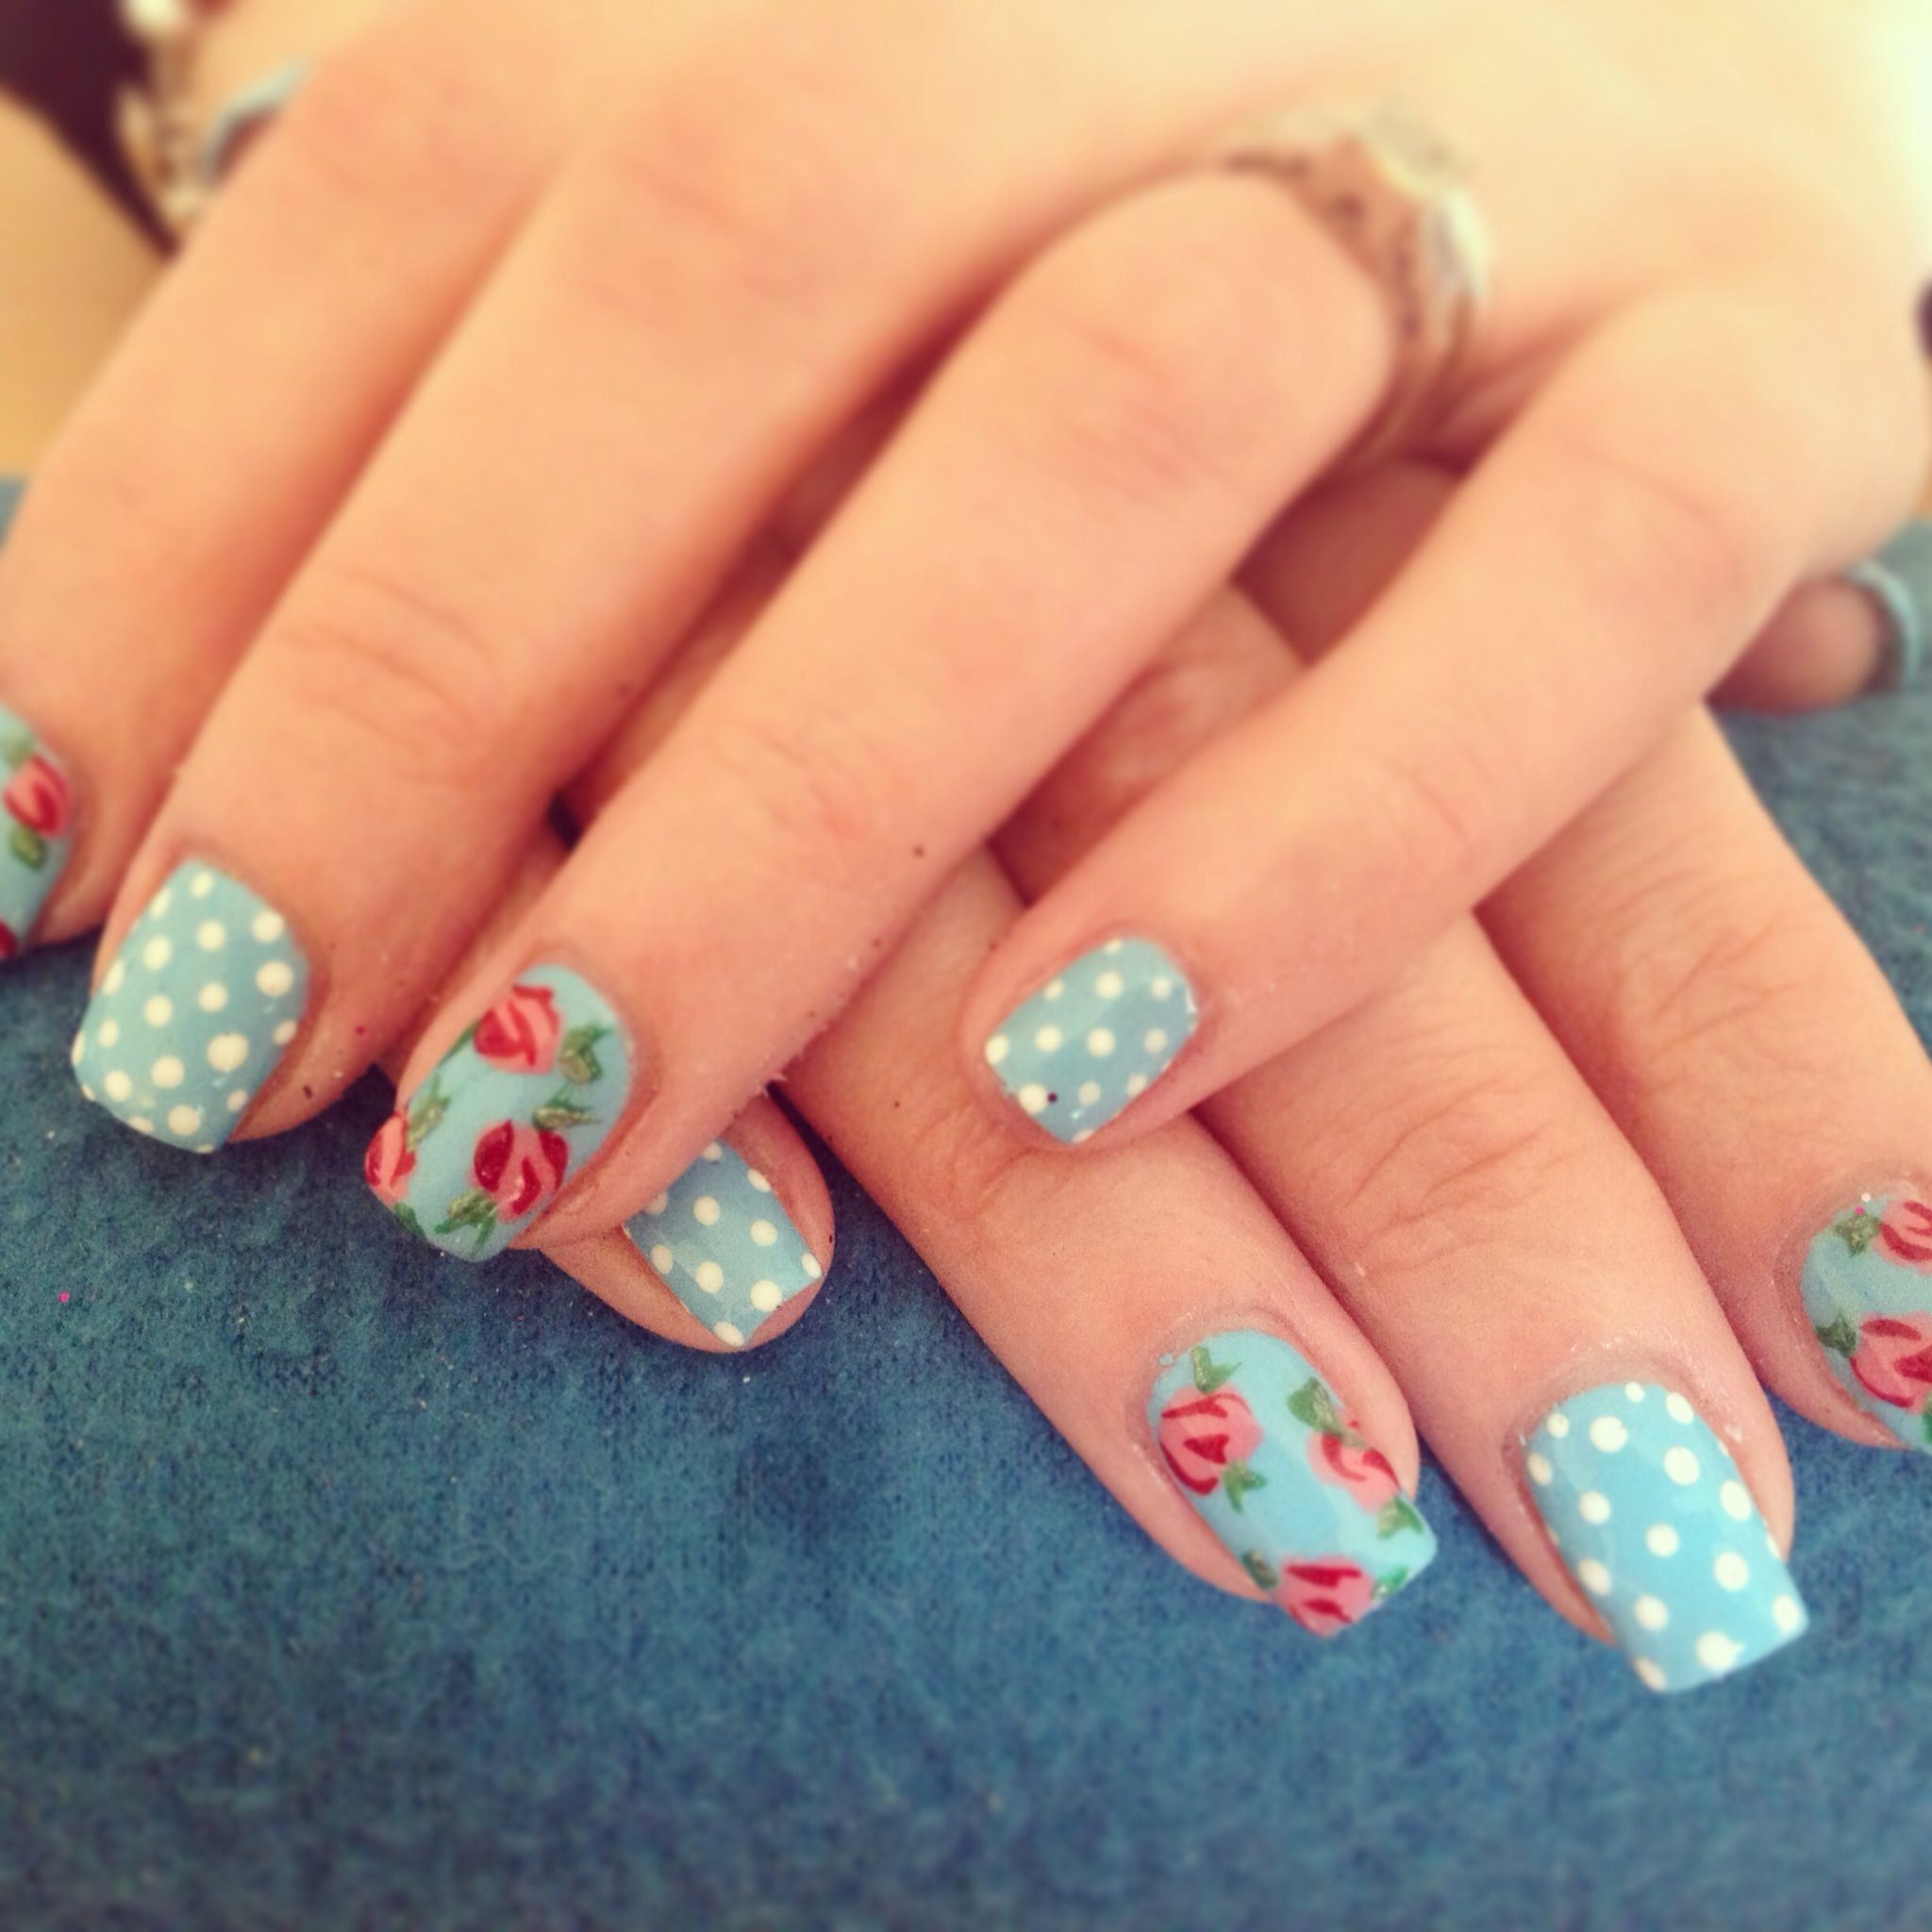 Cath Kidston nail art. All free handed using shellac | 10 Finger ...